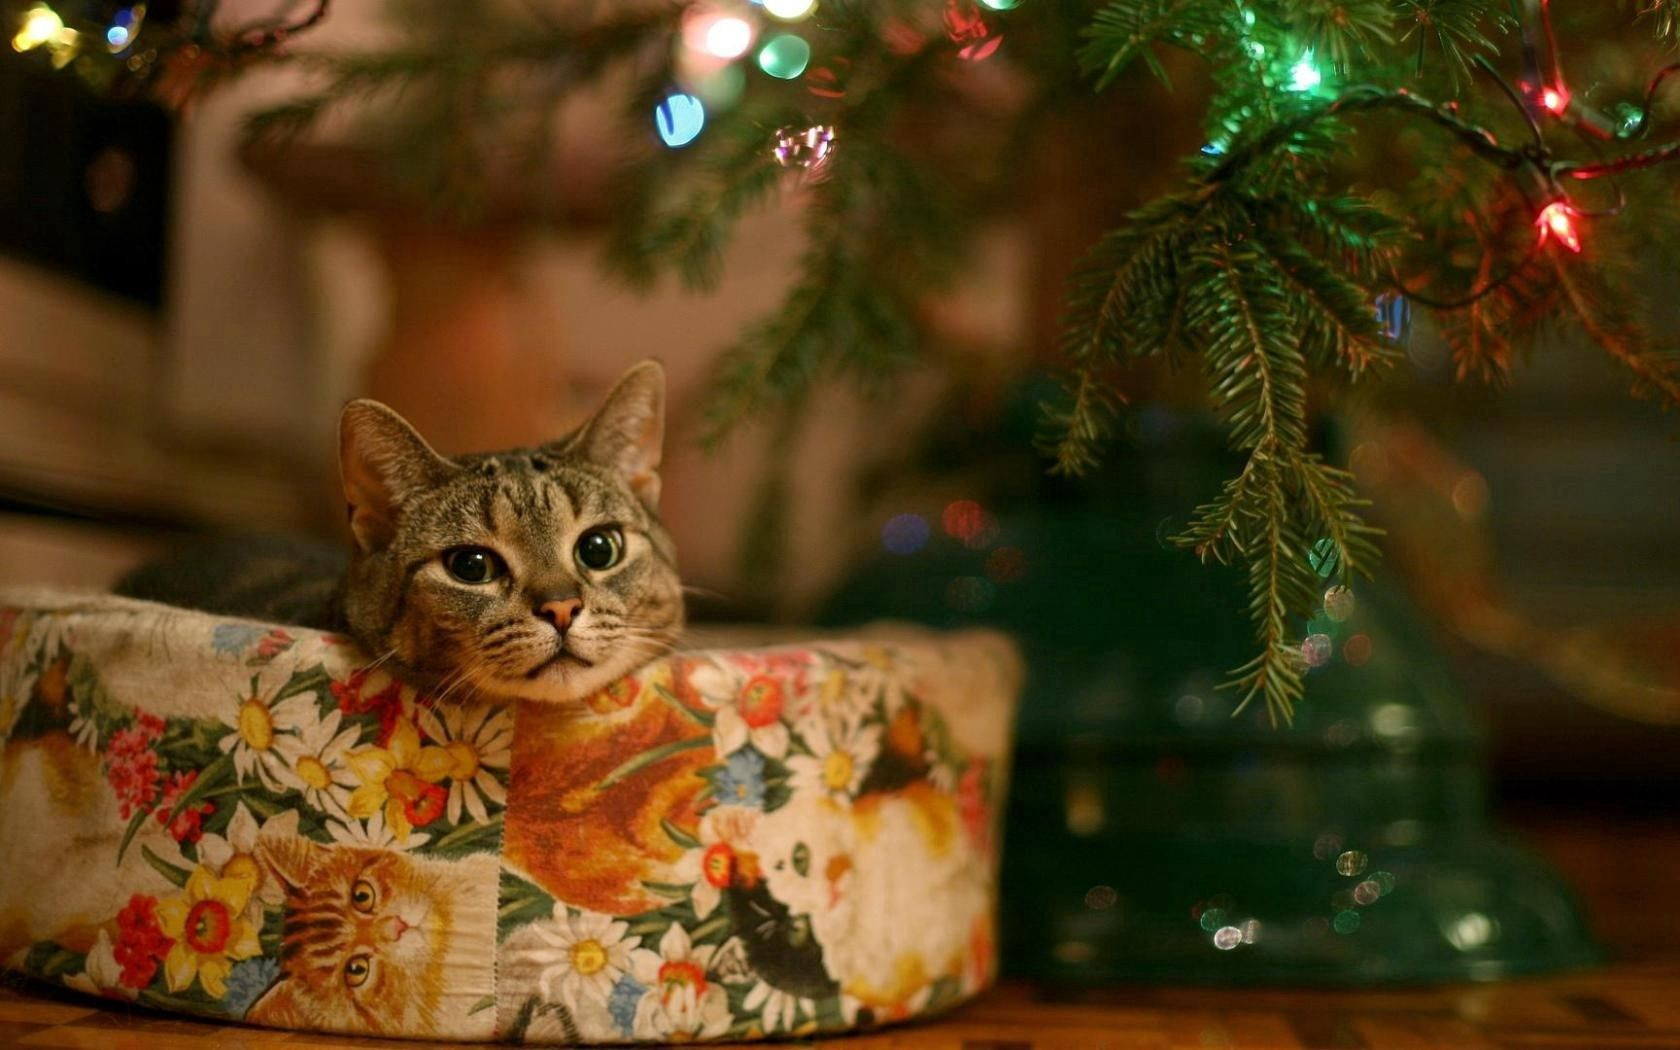 109954 download wallpaper Animals, Cat, Box, Christmas, Sit, Muzzle screensavers and pictures for free